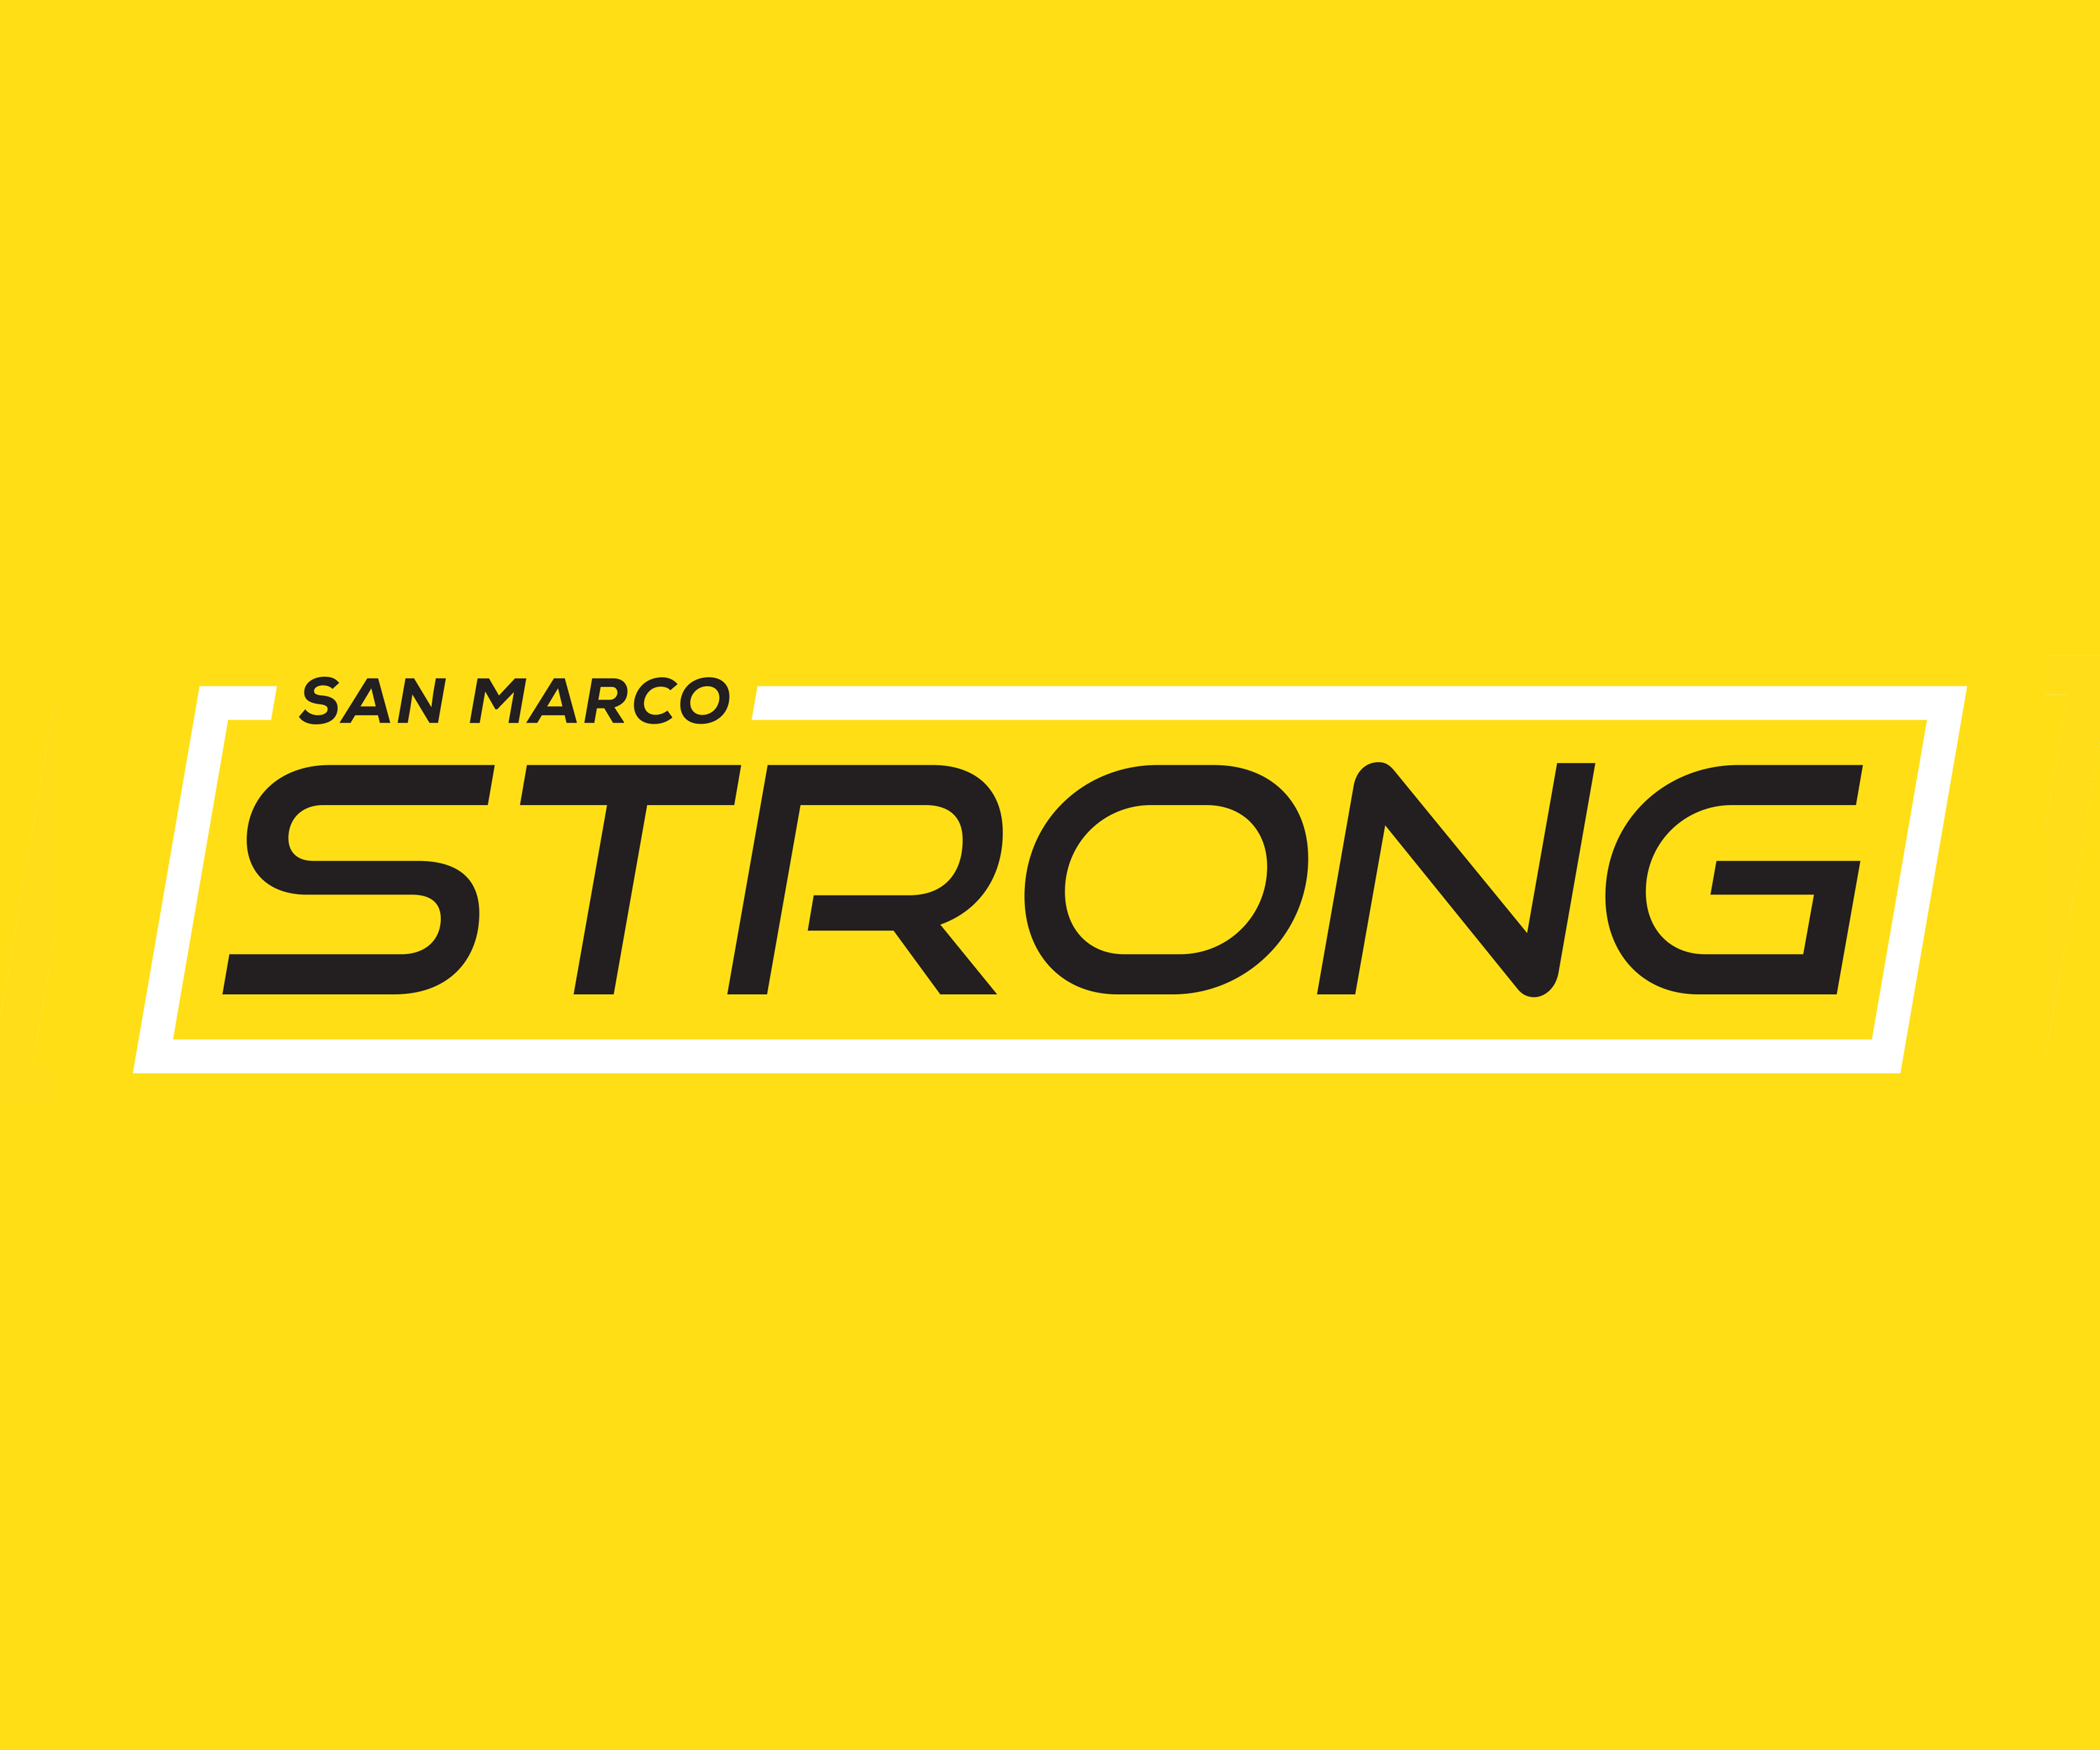 San Marco Strong